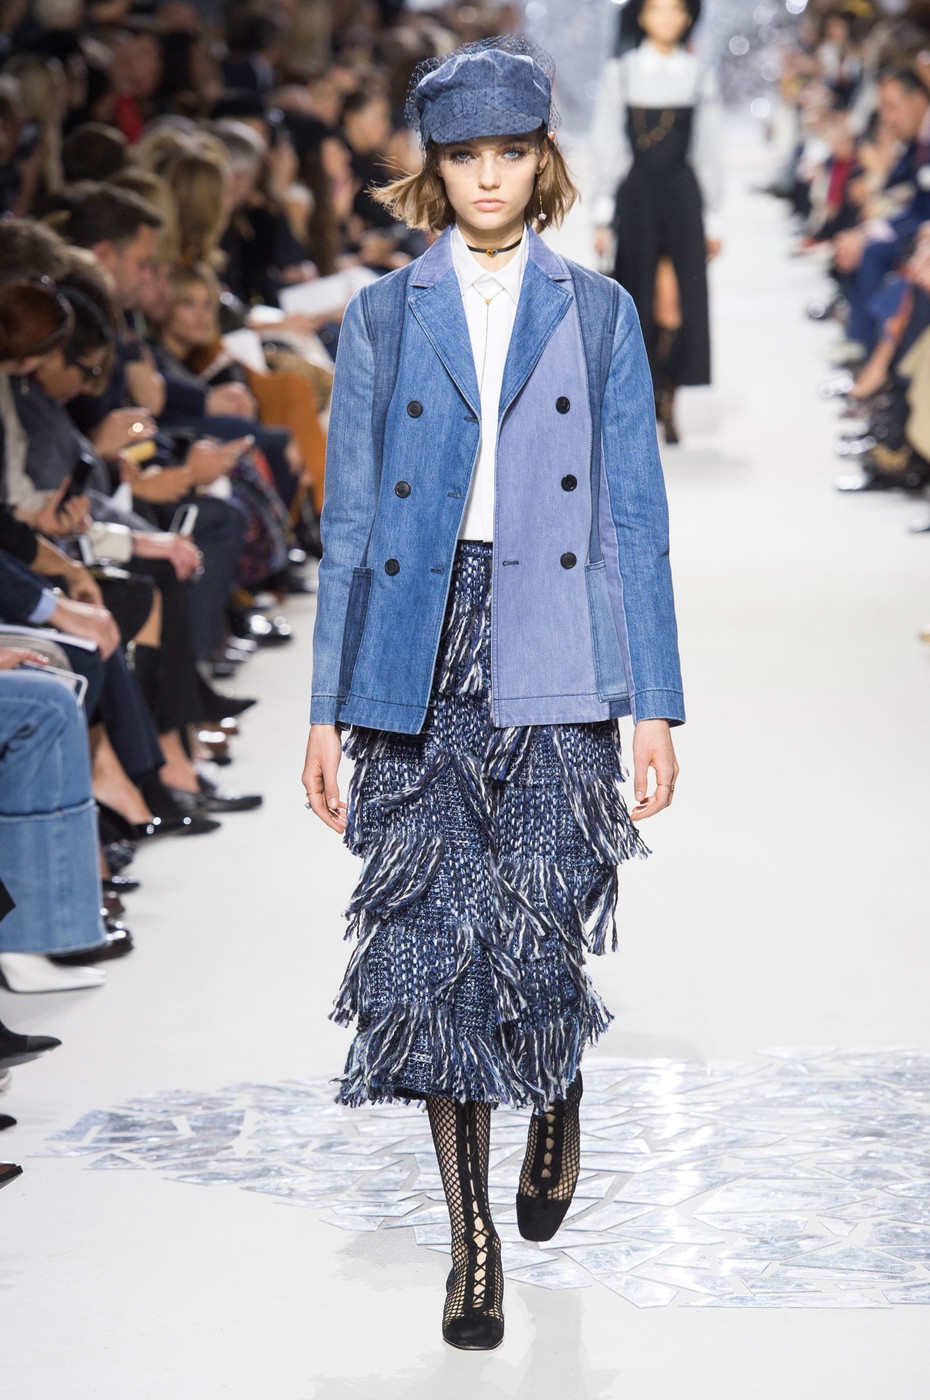 Christian Dior Spring 2018 Runway Pictures Livingly